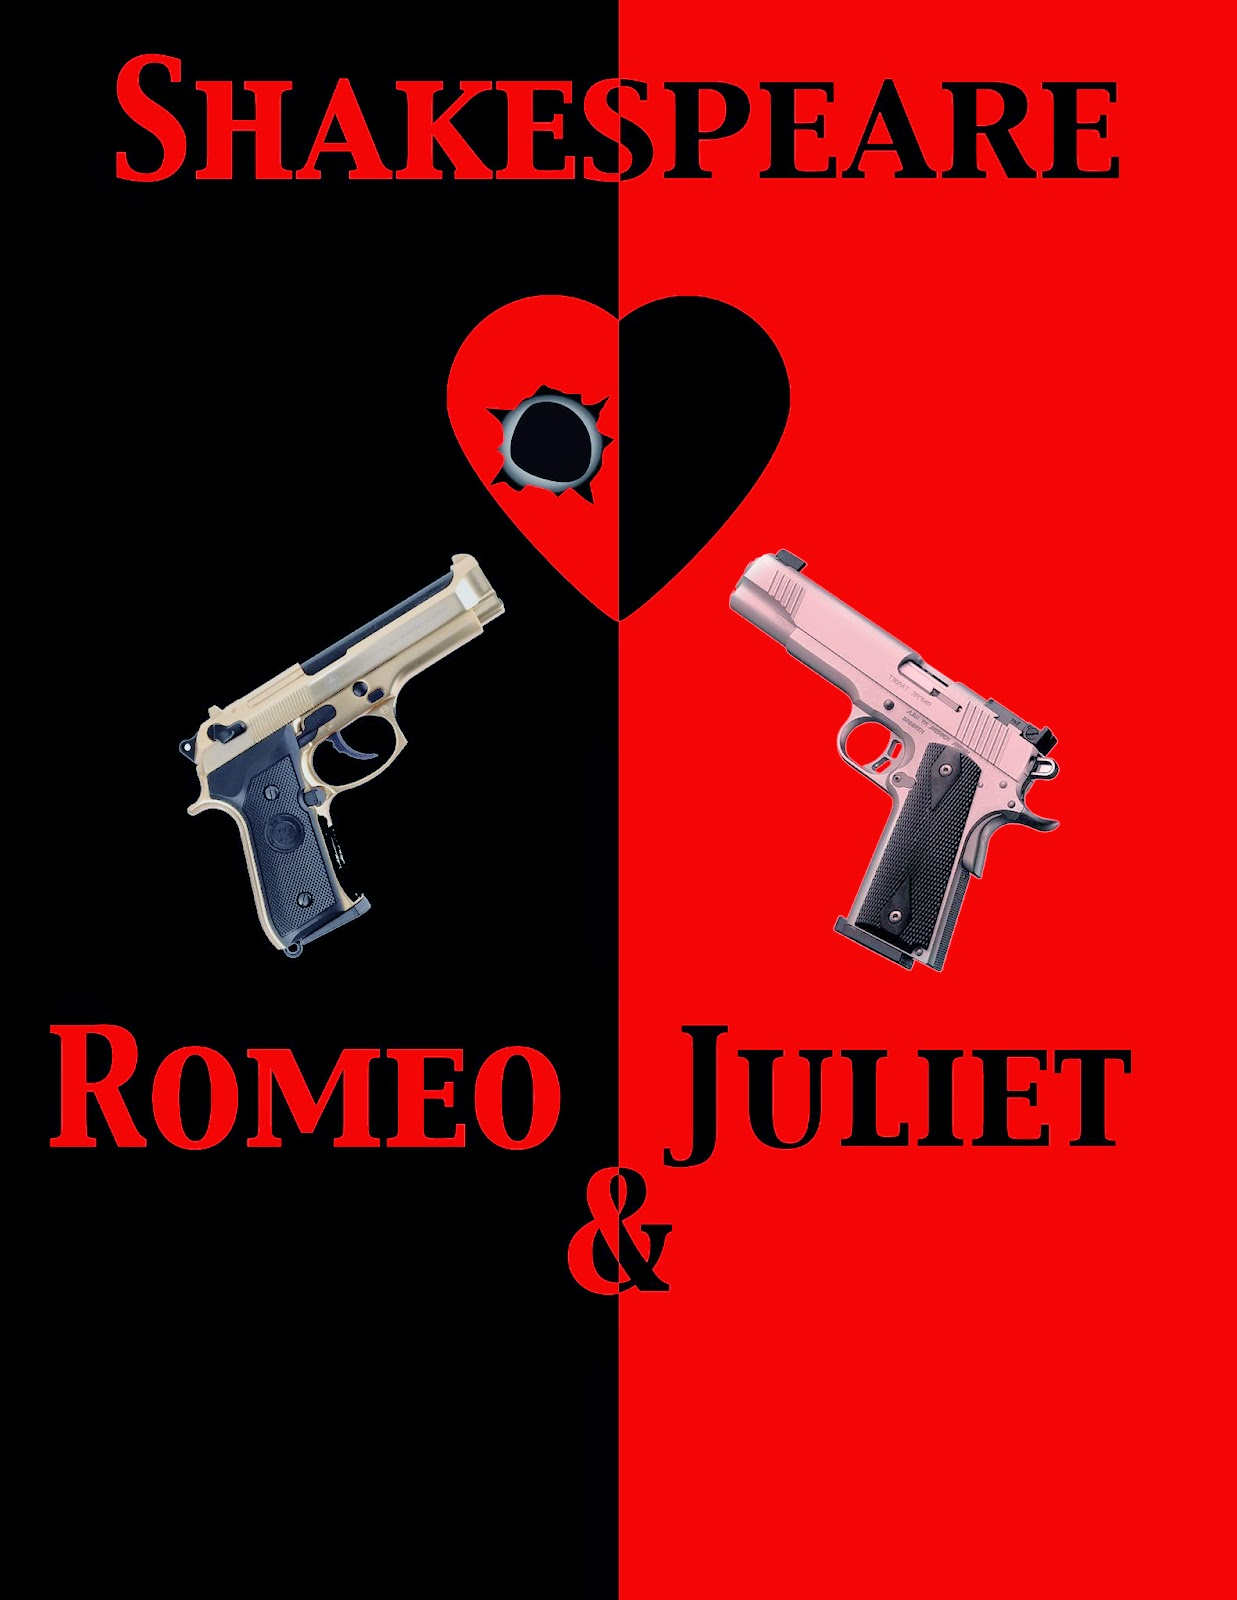 providence within romeo and juliet Starting at 6:15 pm on the basin stage in waterplace park trinity repertory   romeo and juliet will tour throughout providence from july 7th.